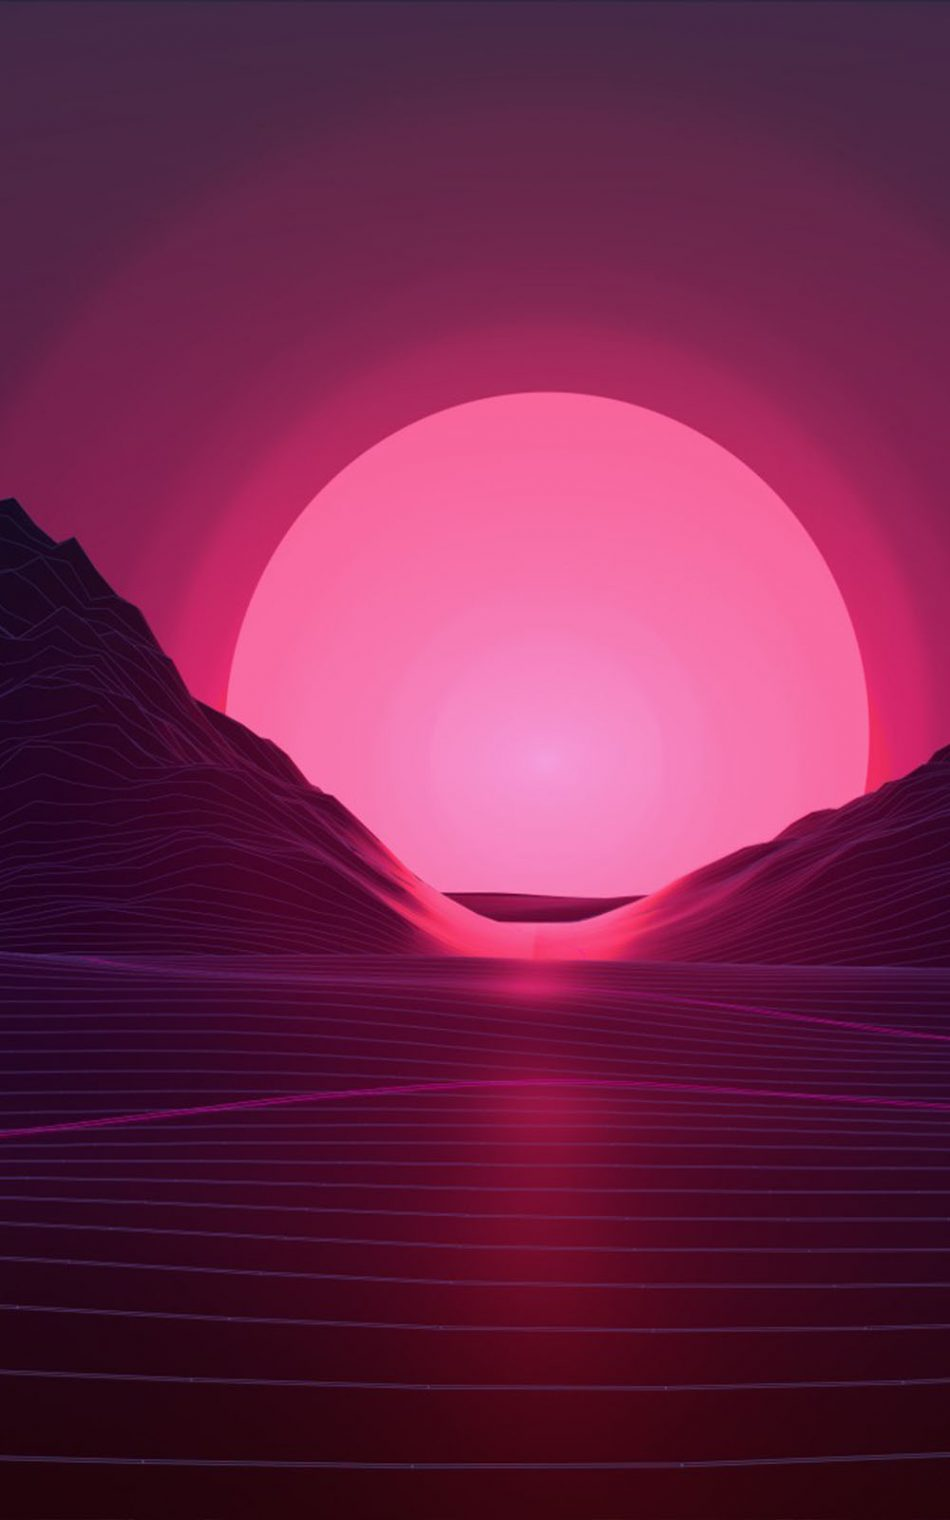 Neon Pink Sunset Artwork HD Mobile Wallpaper